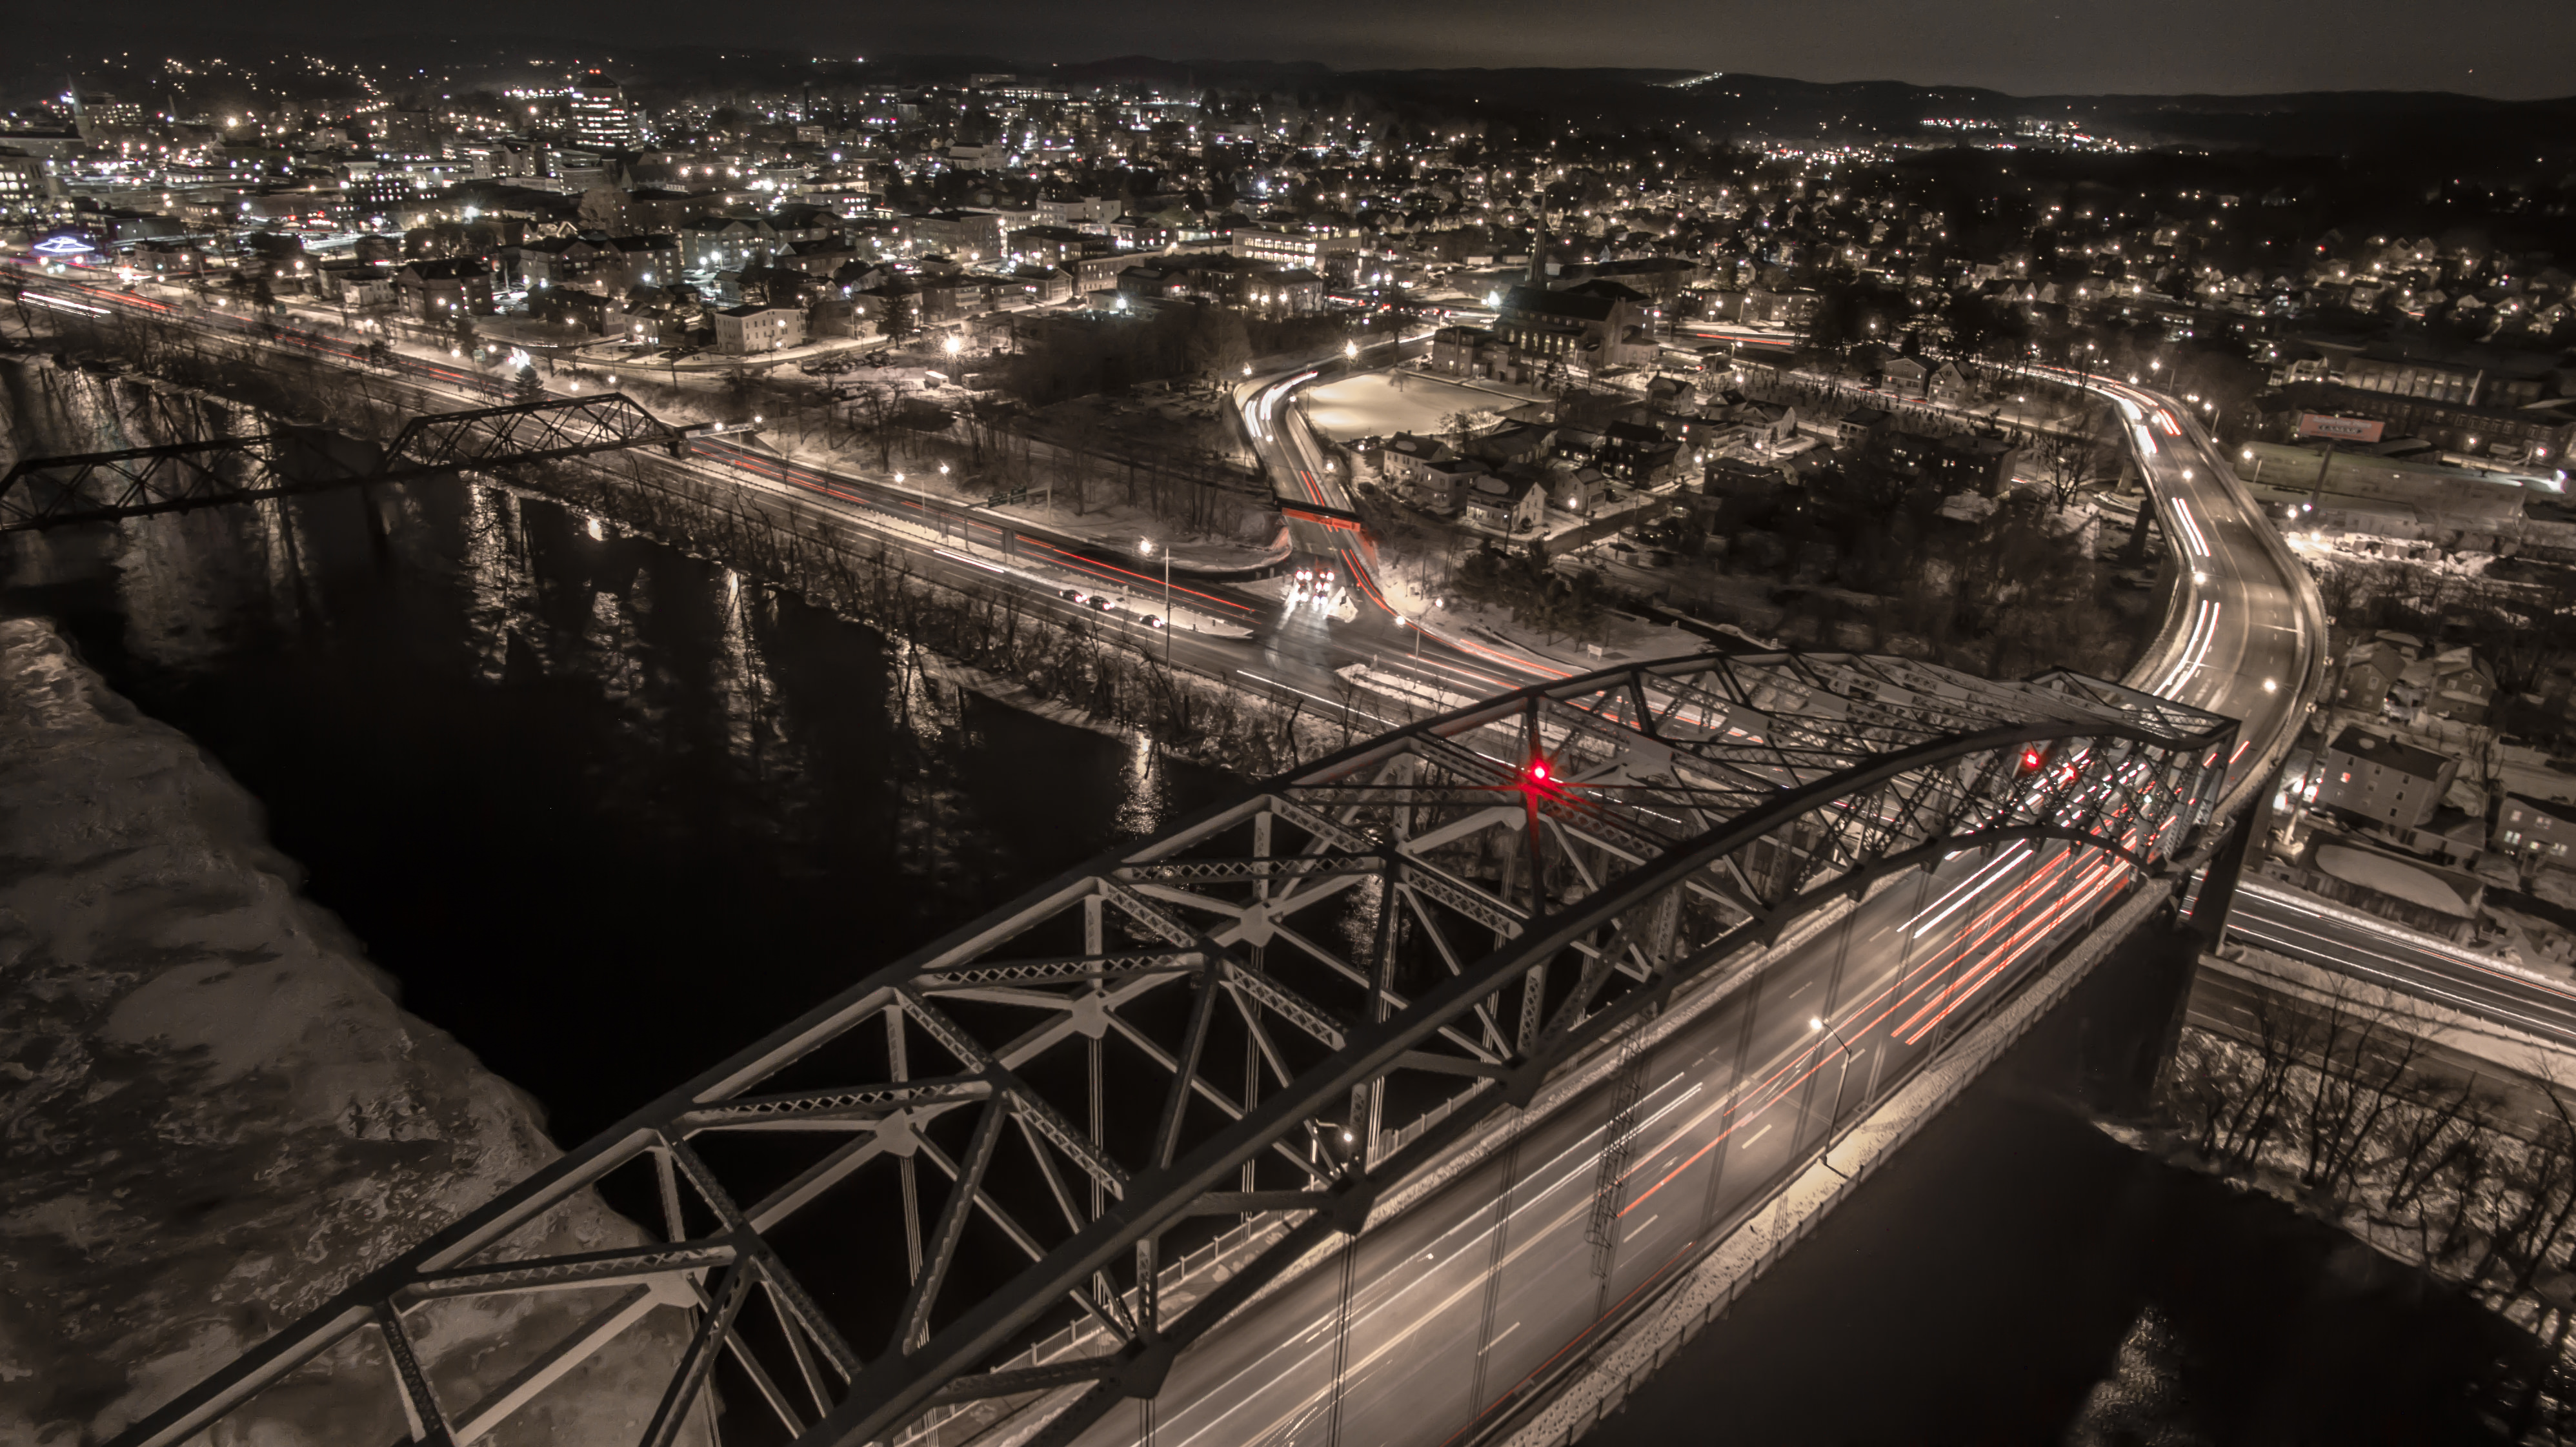 Drone Bridge Photo in Middletown Connecticut